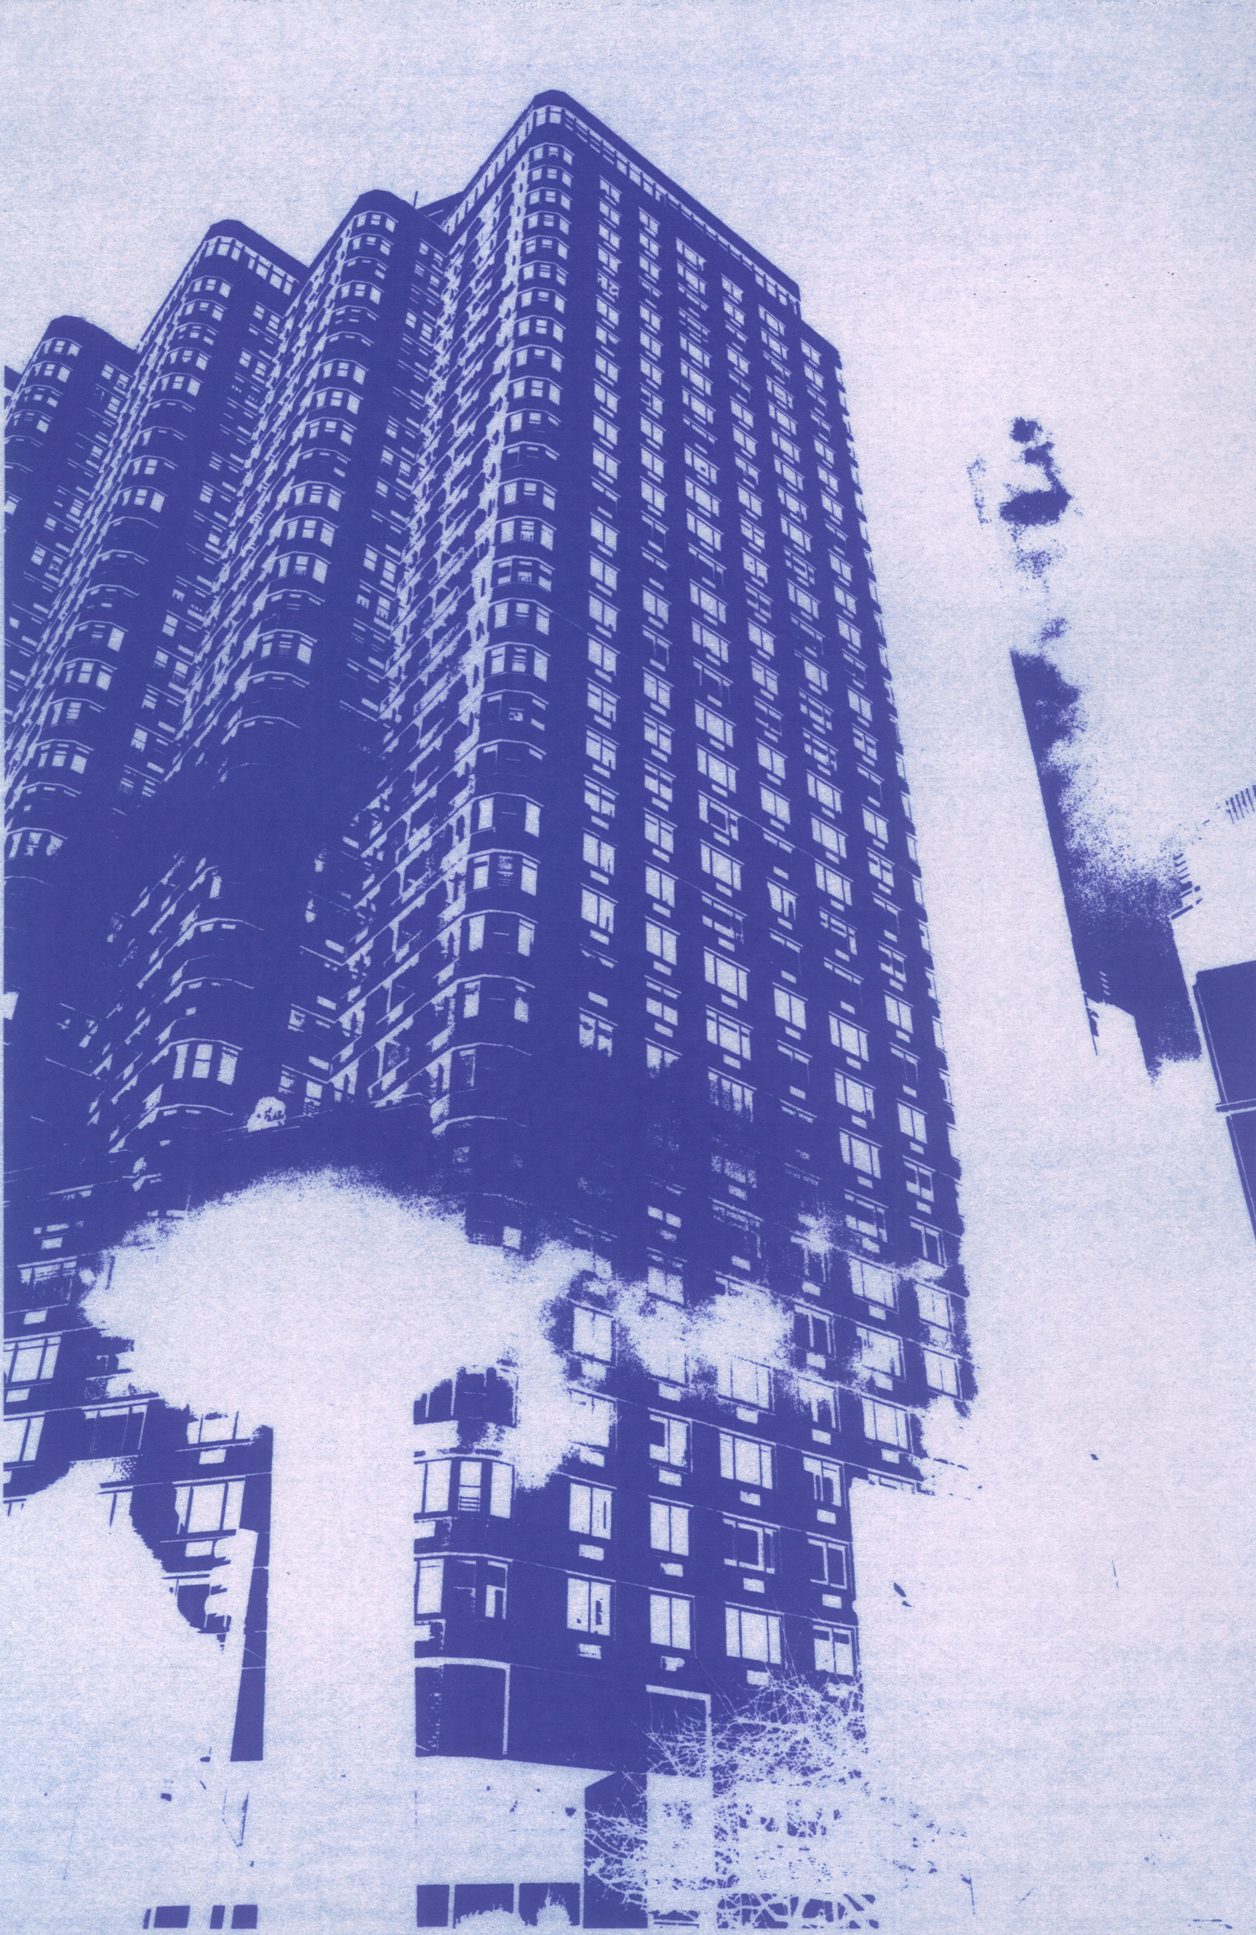 Tony Stamolis, 63 Central Park West, 2013 cyanotype 28 x 43 cm - 11 x 17 inches